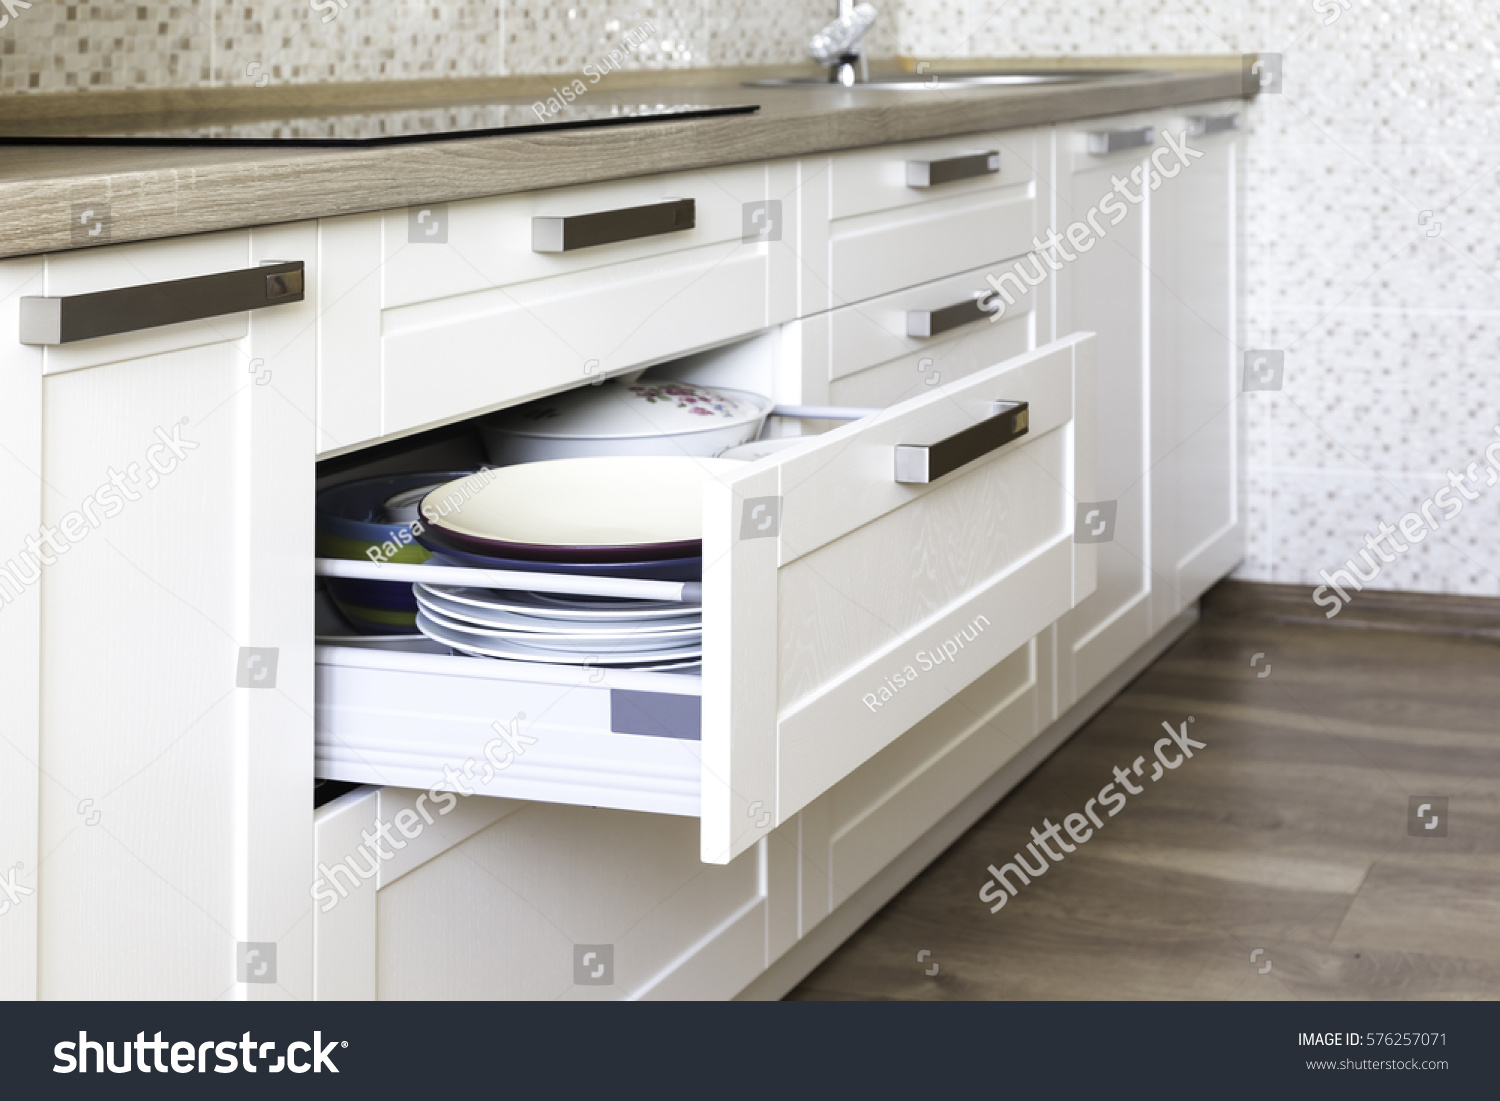 Opened kitchen drawer with plates inside, a smart solution for kitchen storage and organizing.  #576257071